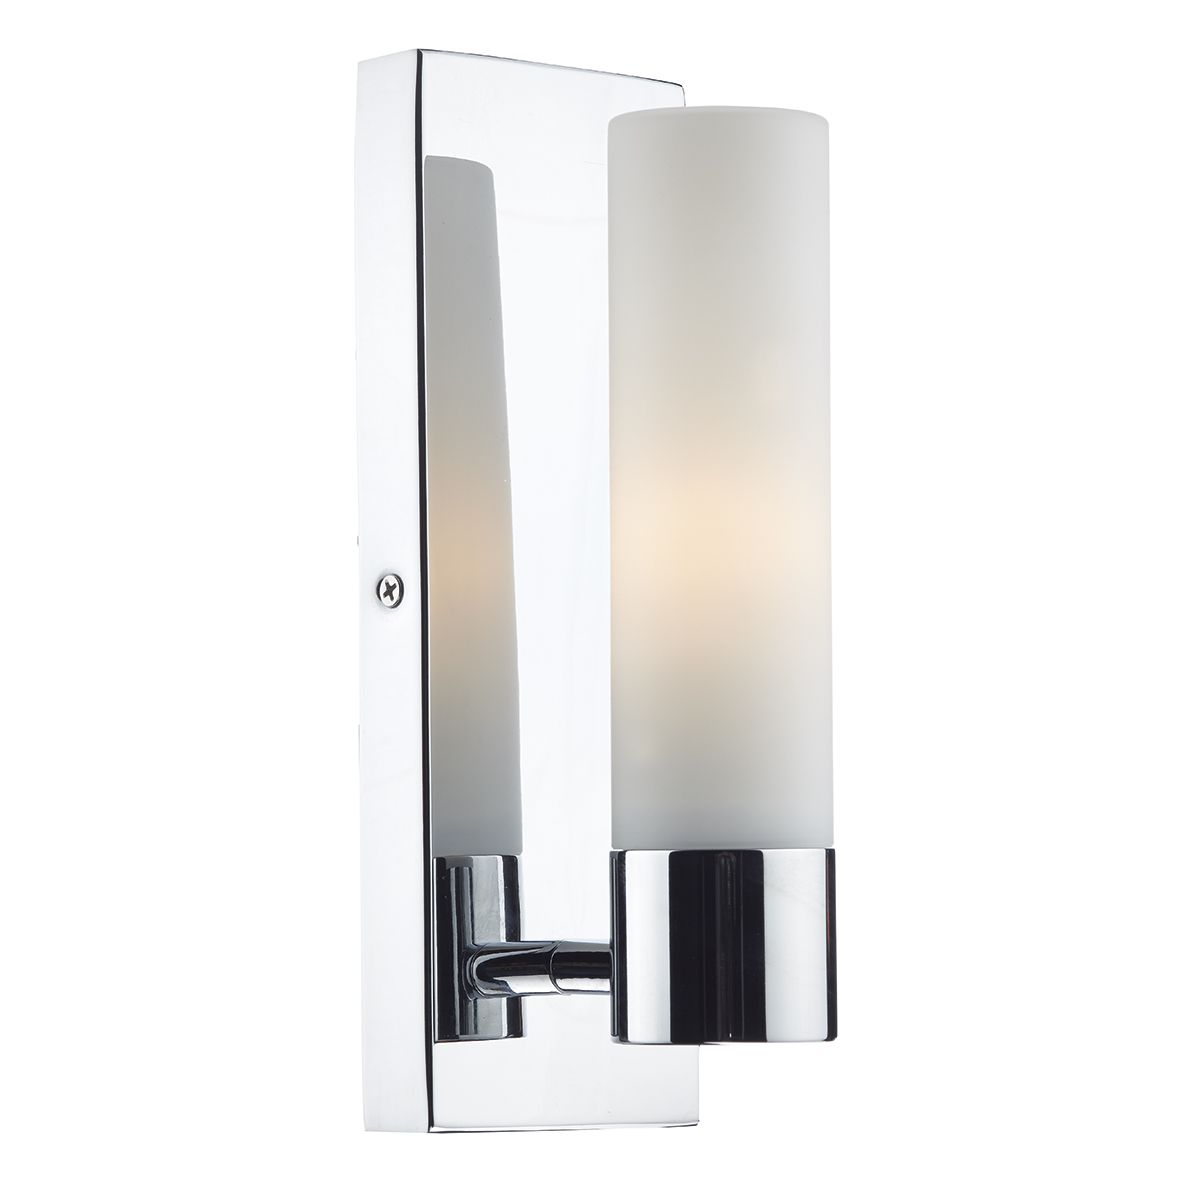 Dar Lighting Adagio bathroom wall light ADA0750